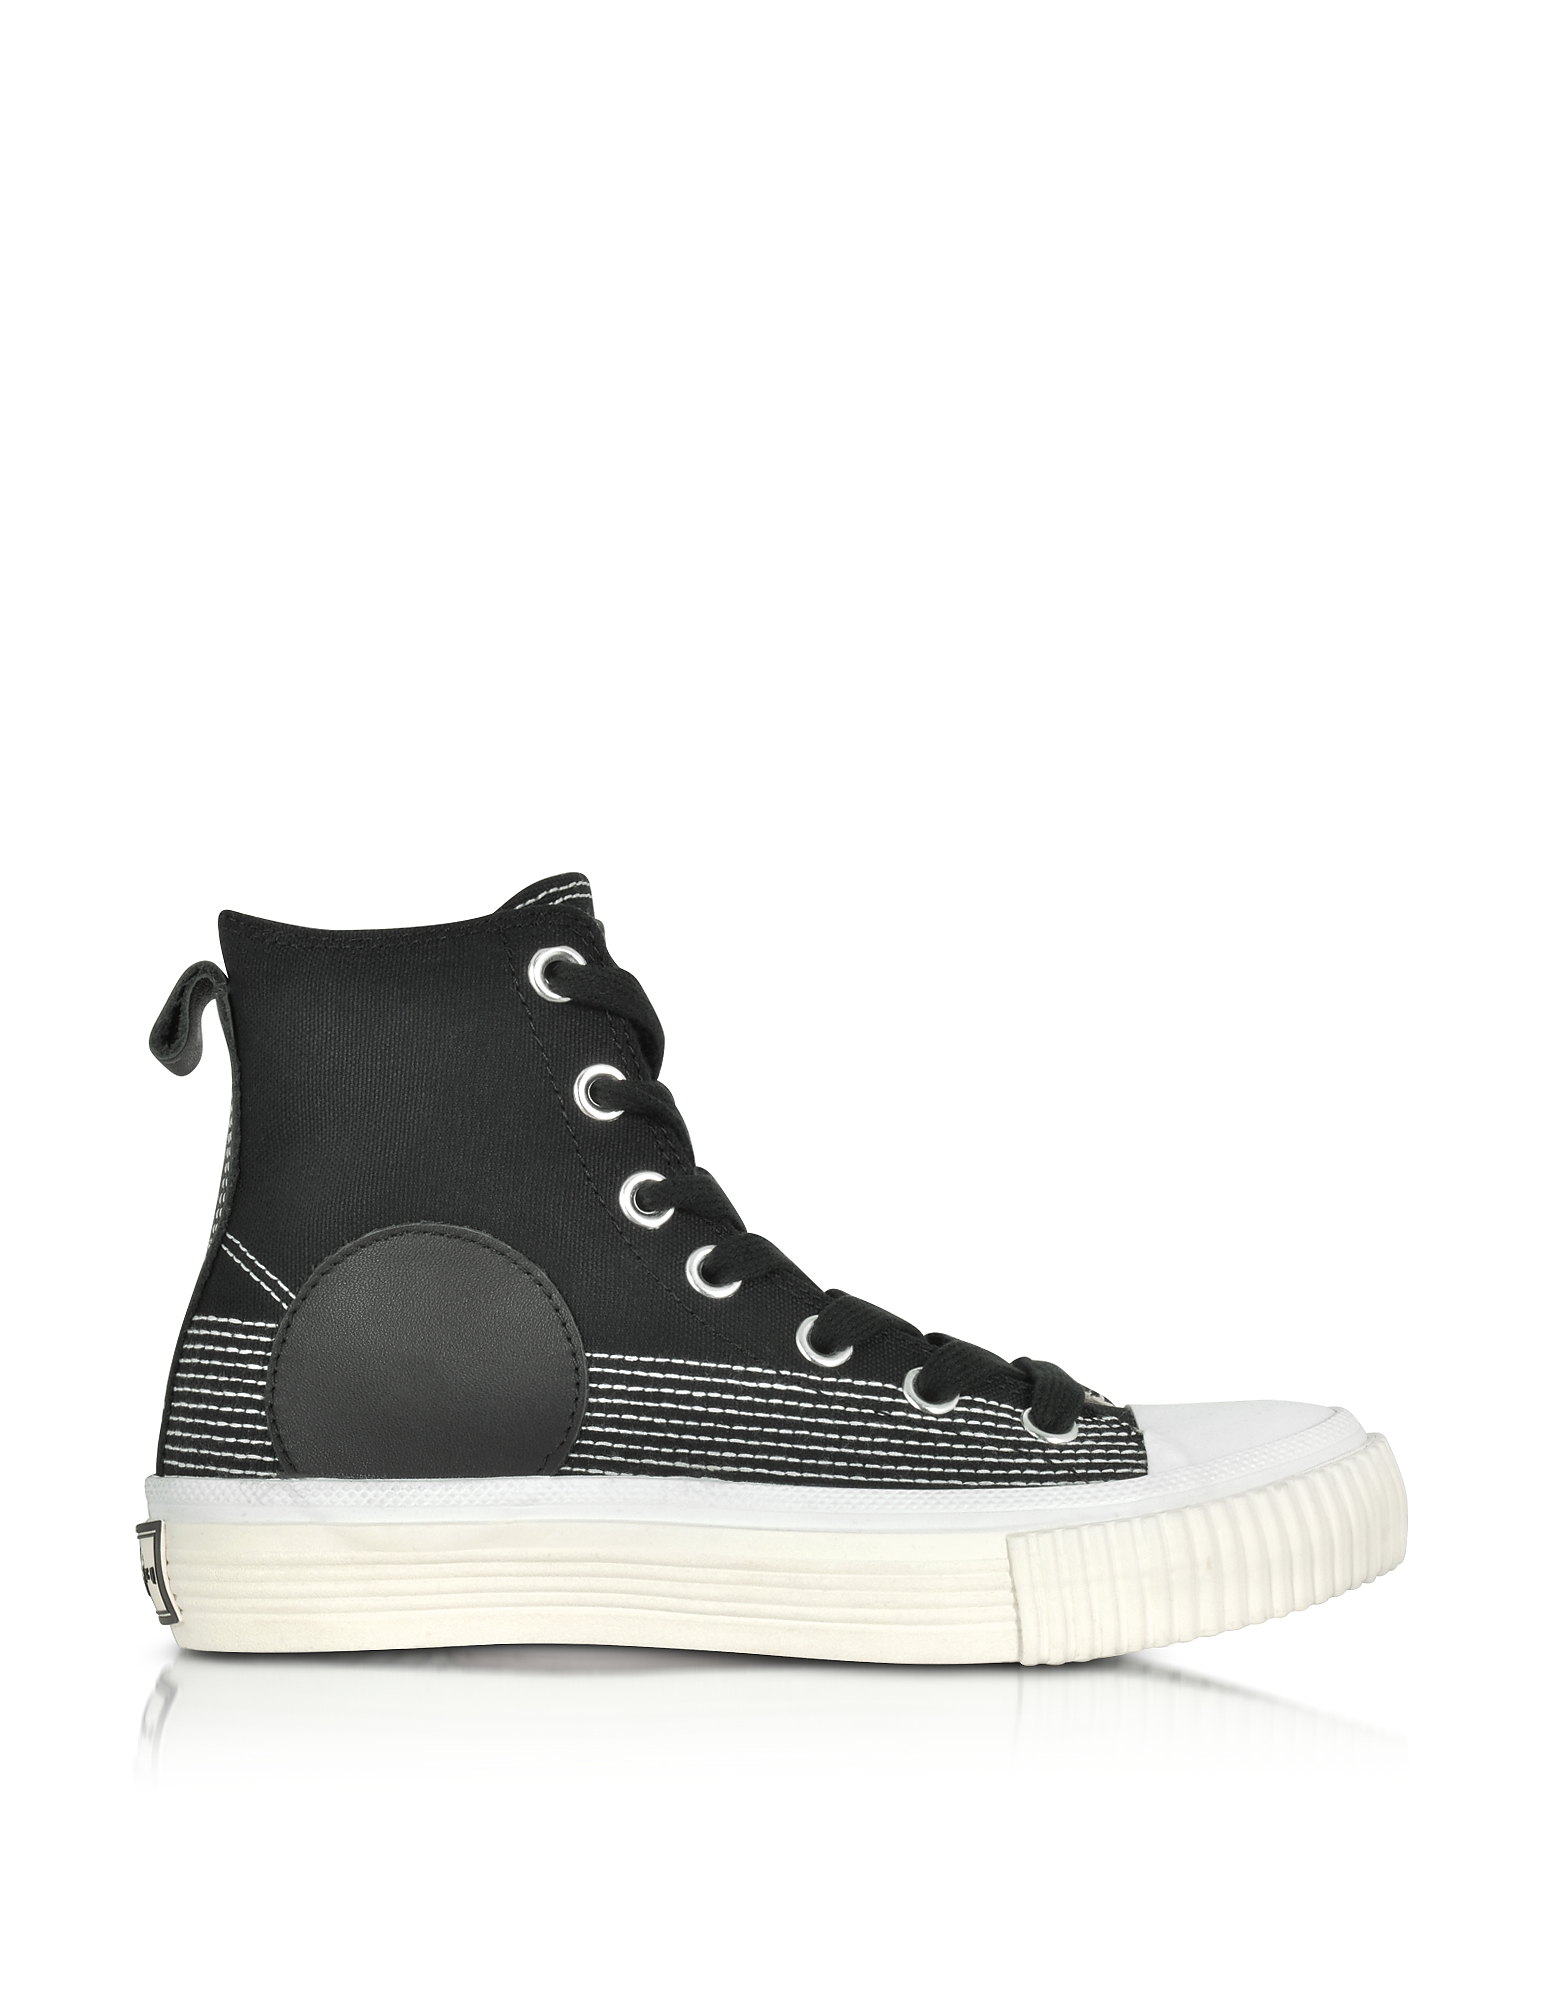 McQ Alexander McQueen Shoes, Black Canvas Plimsoll High Sneakers